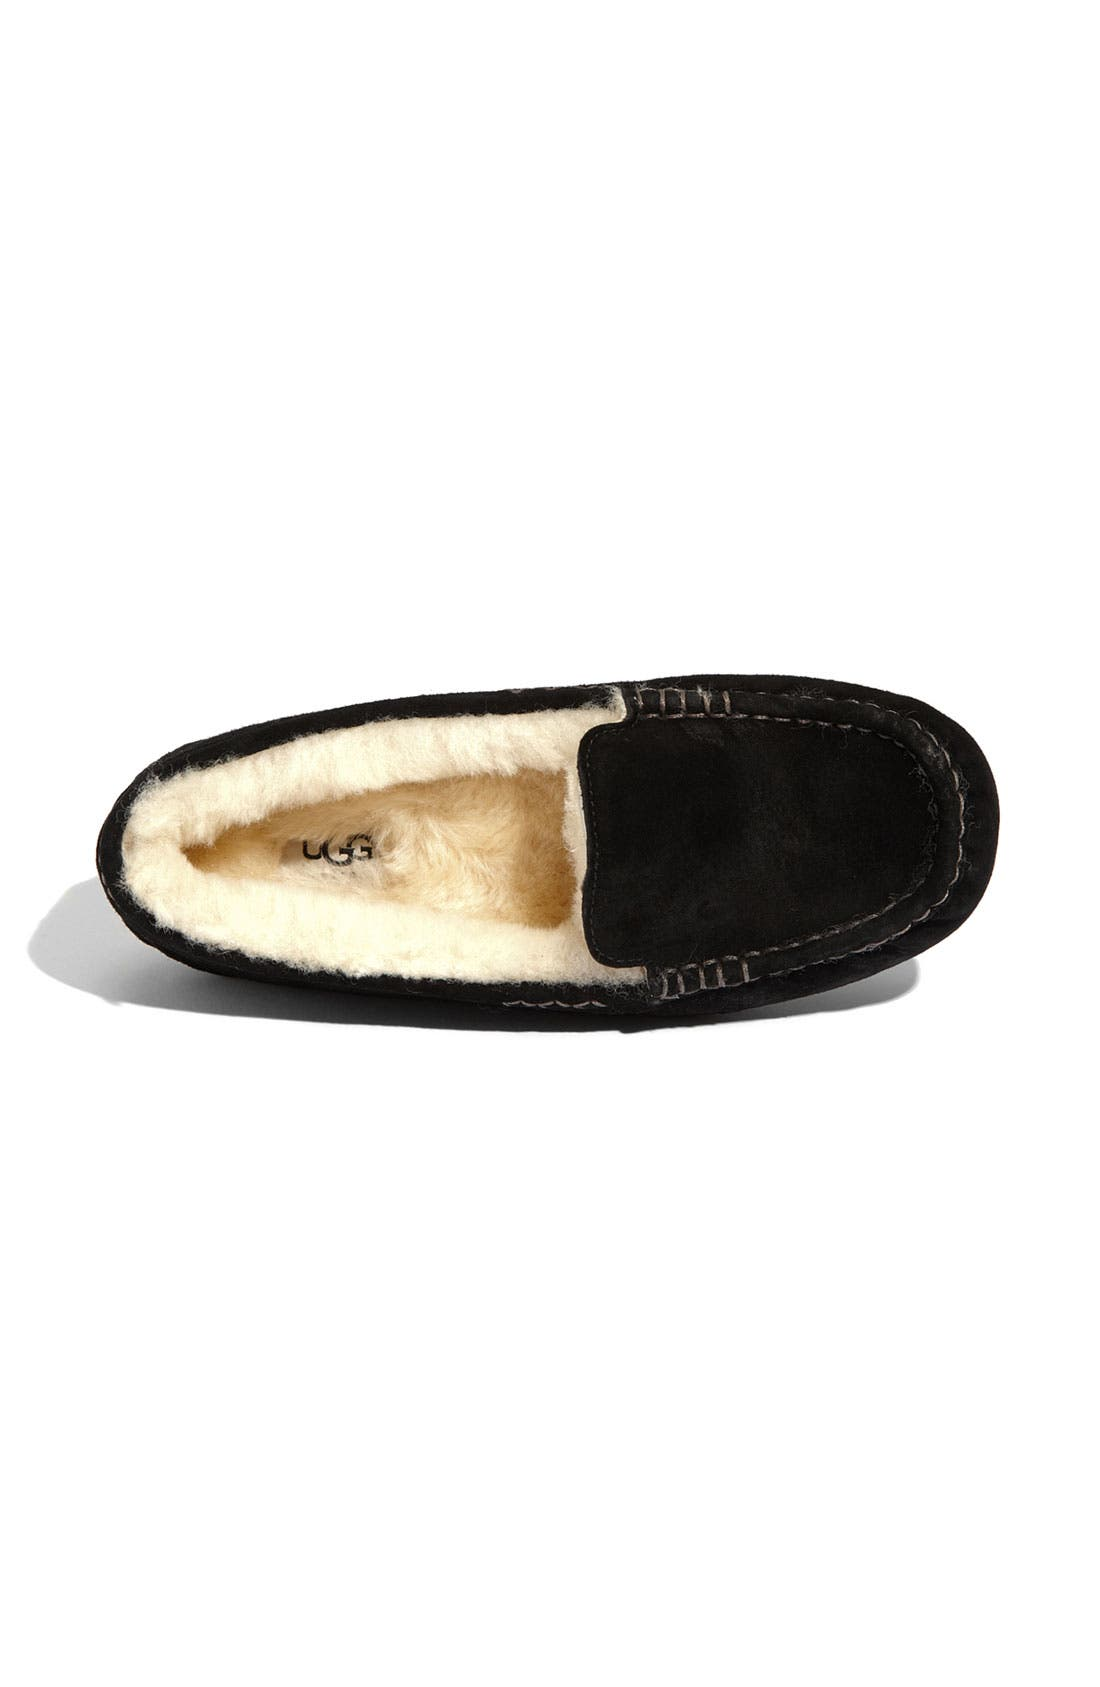 Alternate Image 3  - UGG® Ansley Water Resistant Slipper (Women)